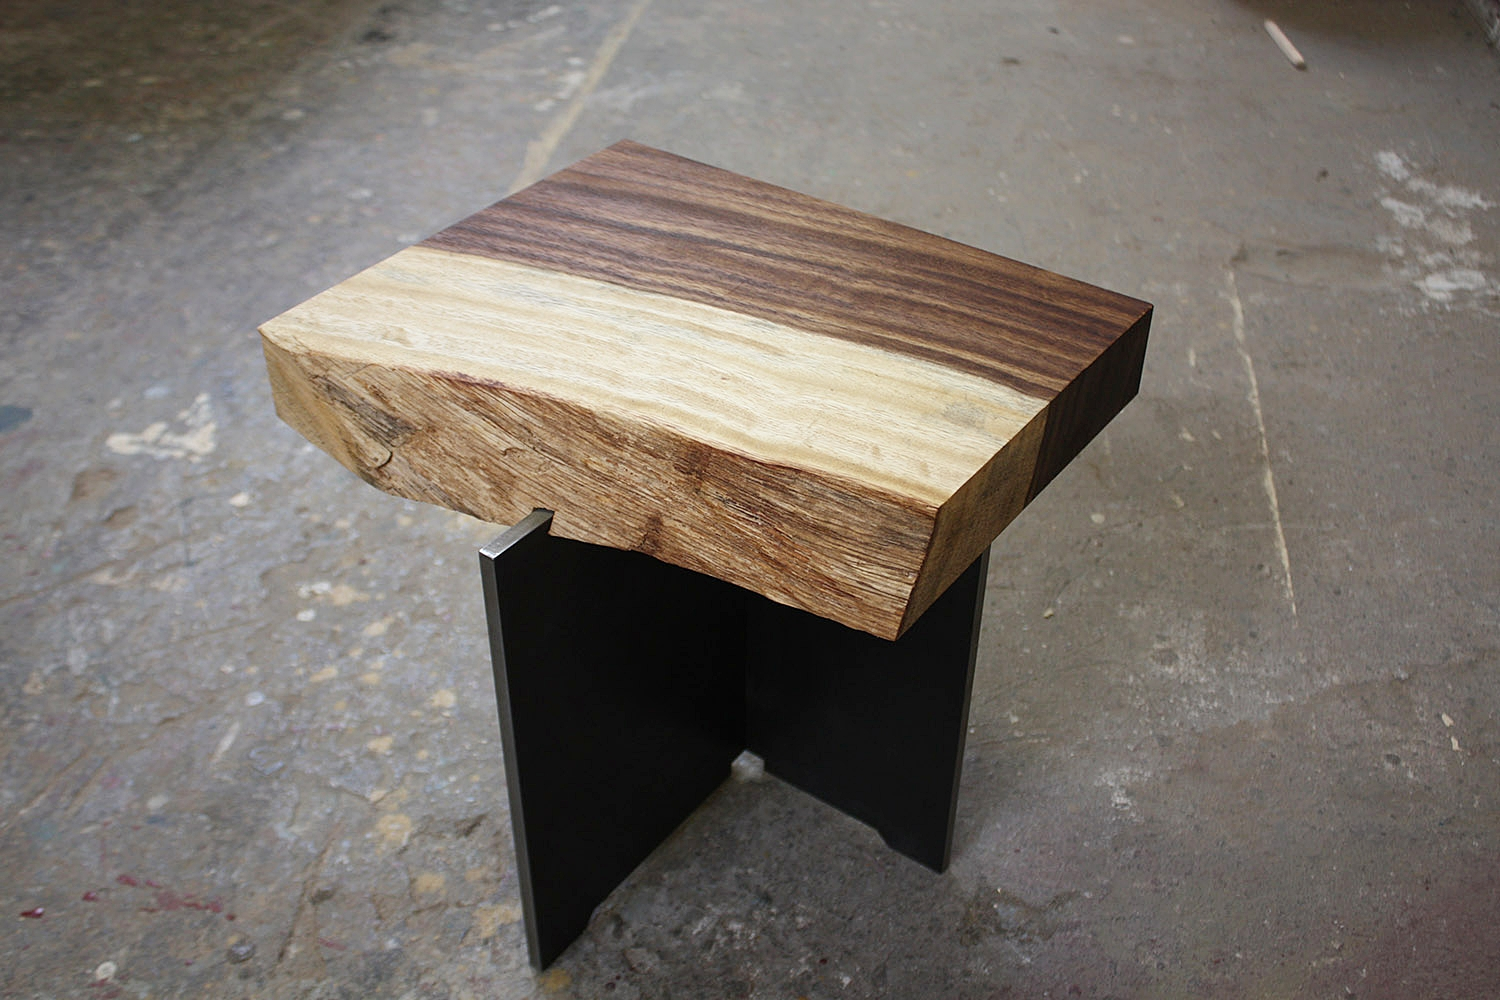 """Materials:  Guanacaste and Steel     Slab Thickness: 2.13""""     Size (  LxWxH  ): 14""""x12.5""""x14""""     Weight:37 lbs  ."""